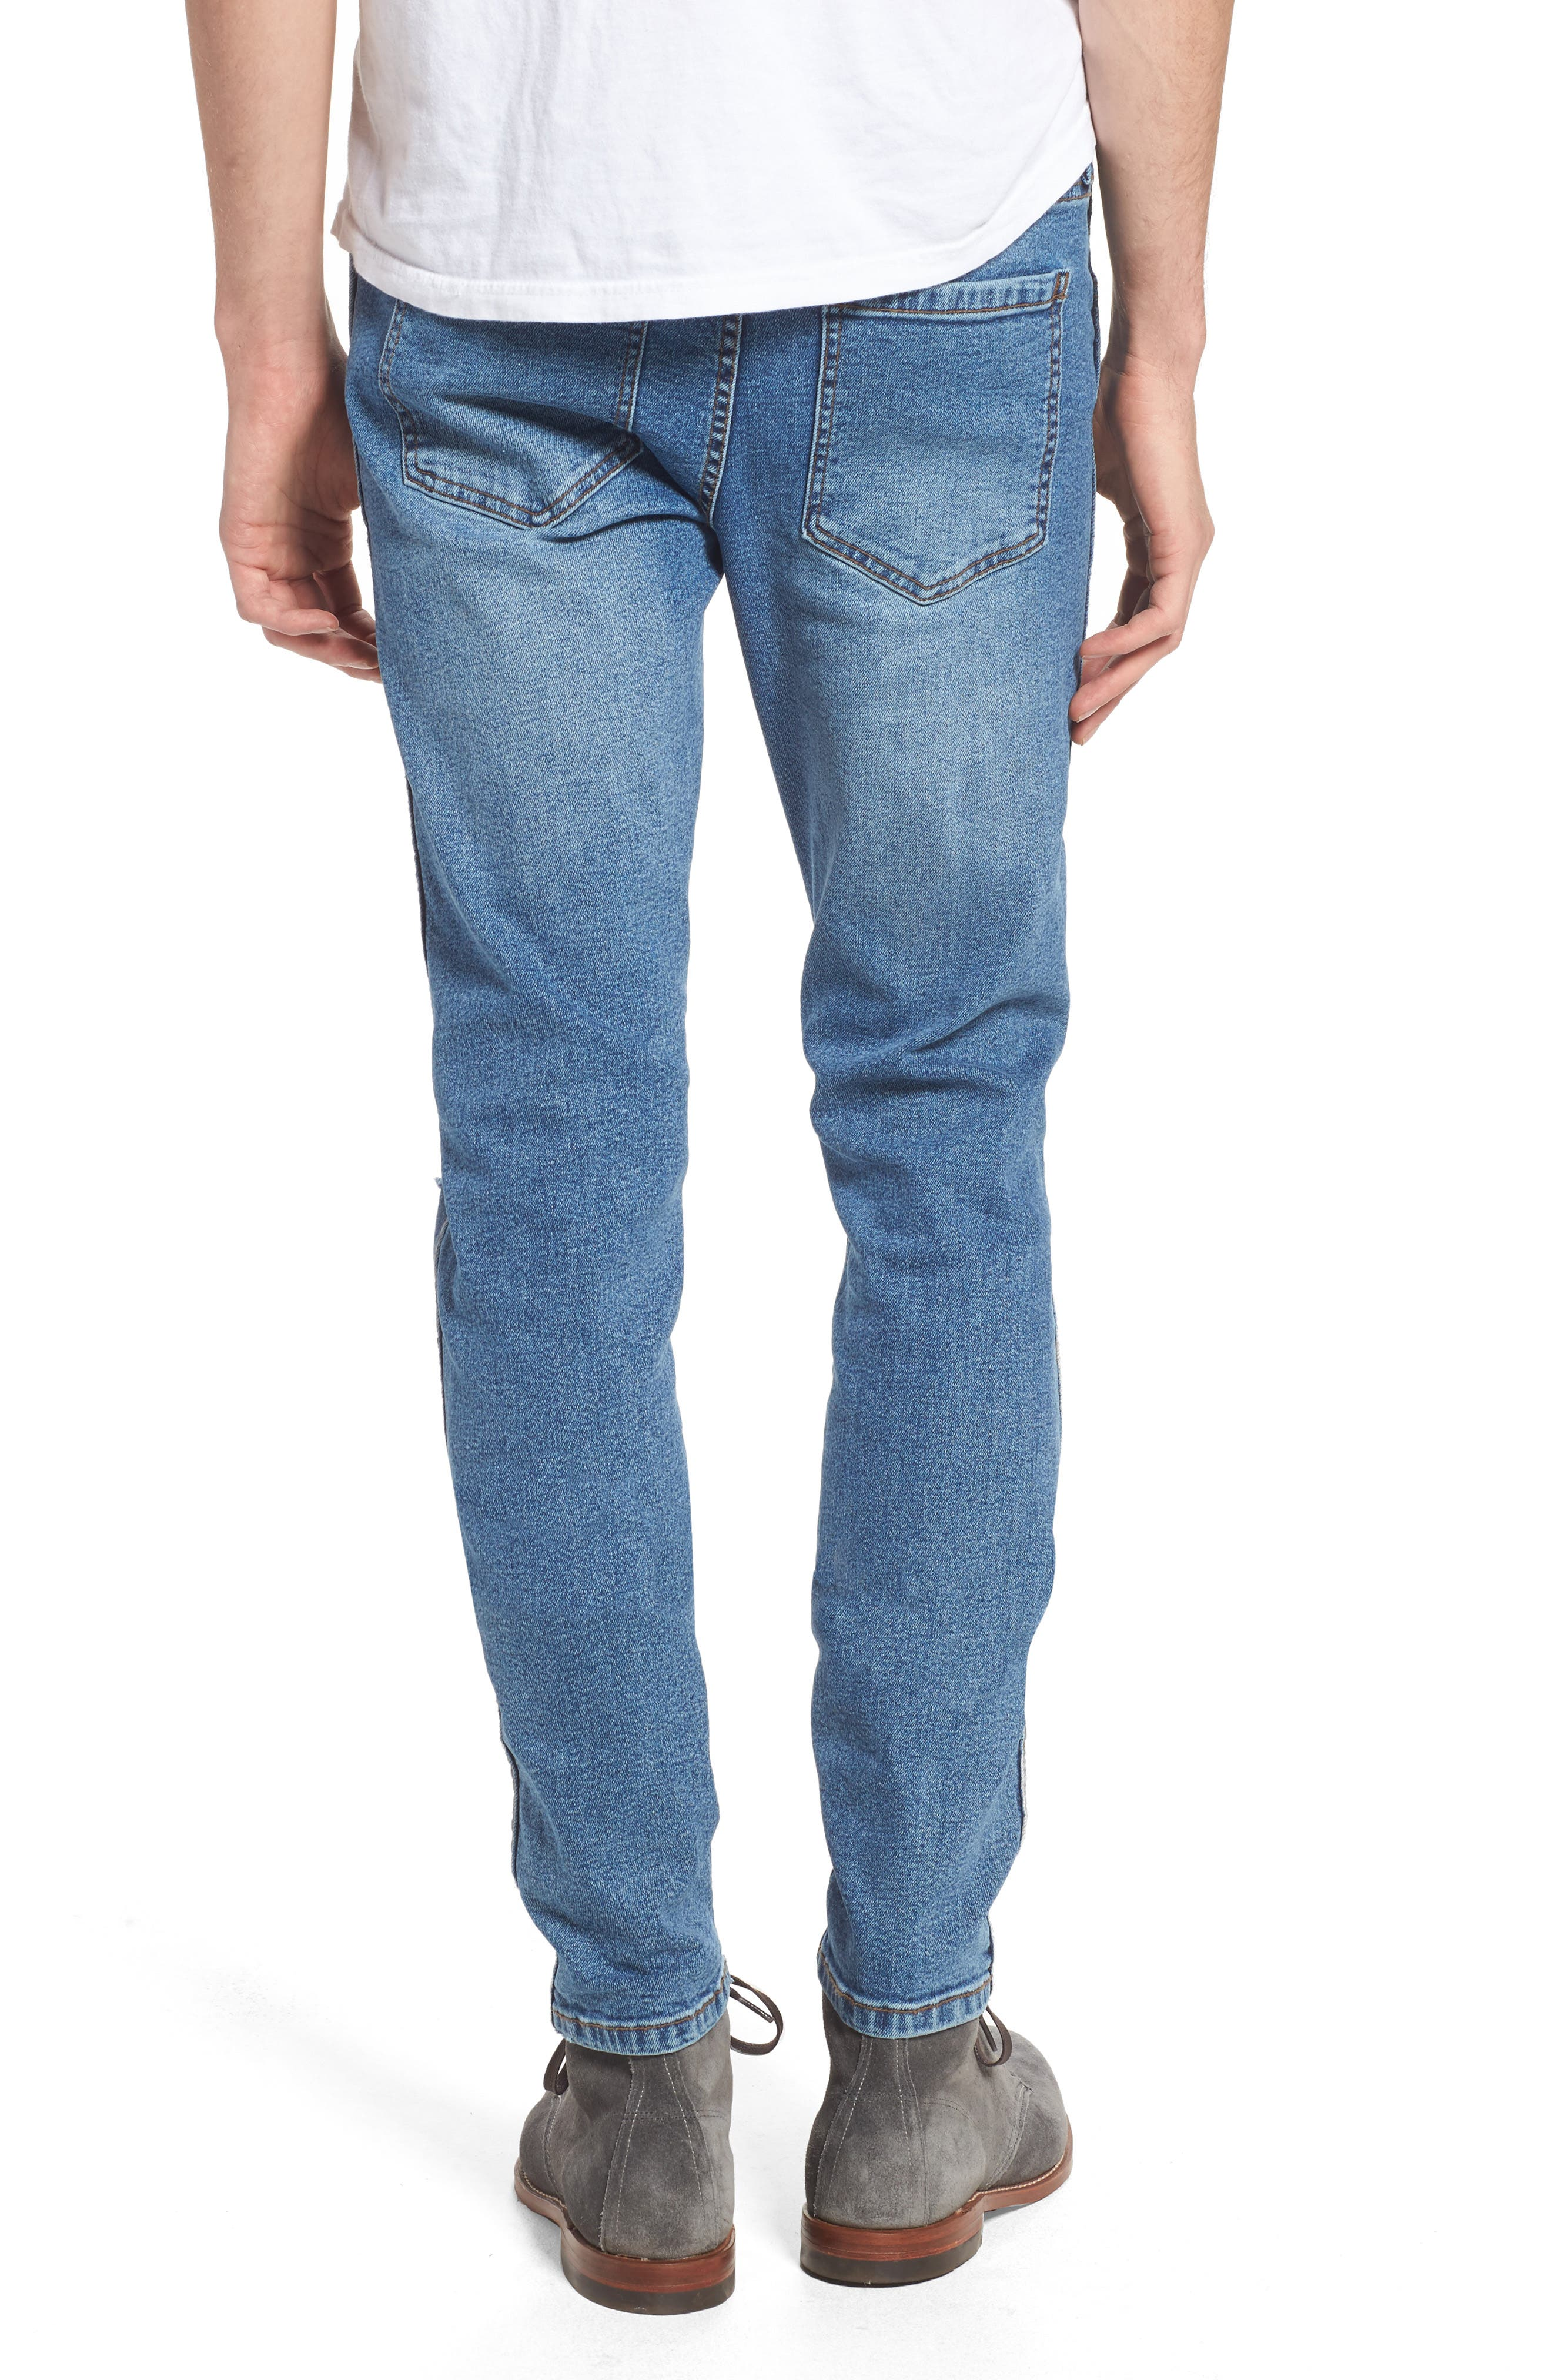 Snap Skinny Fit Jeans,                             Alternate thumbnail 2, color,                             Light Stone Destroyed